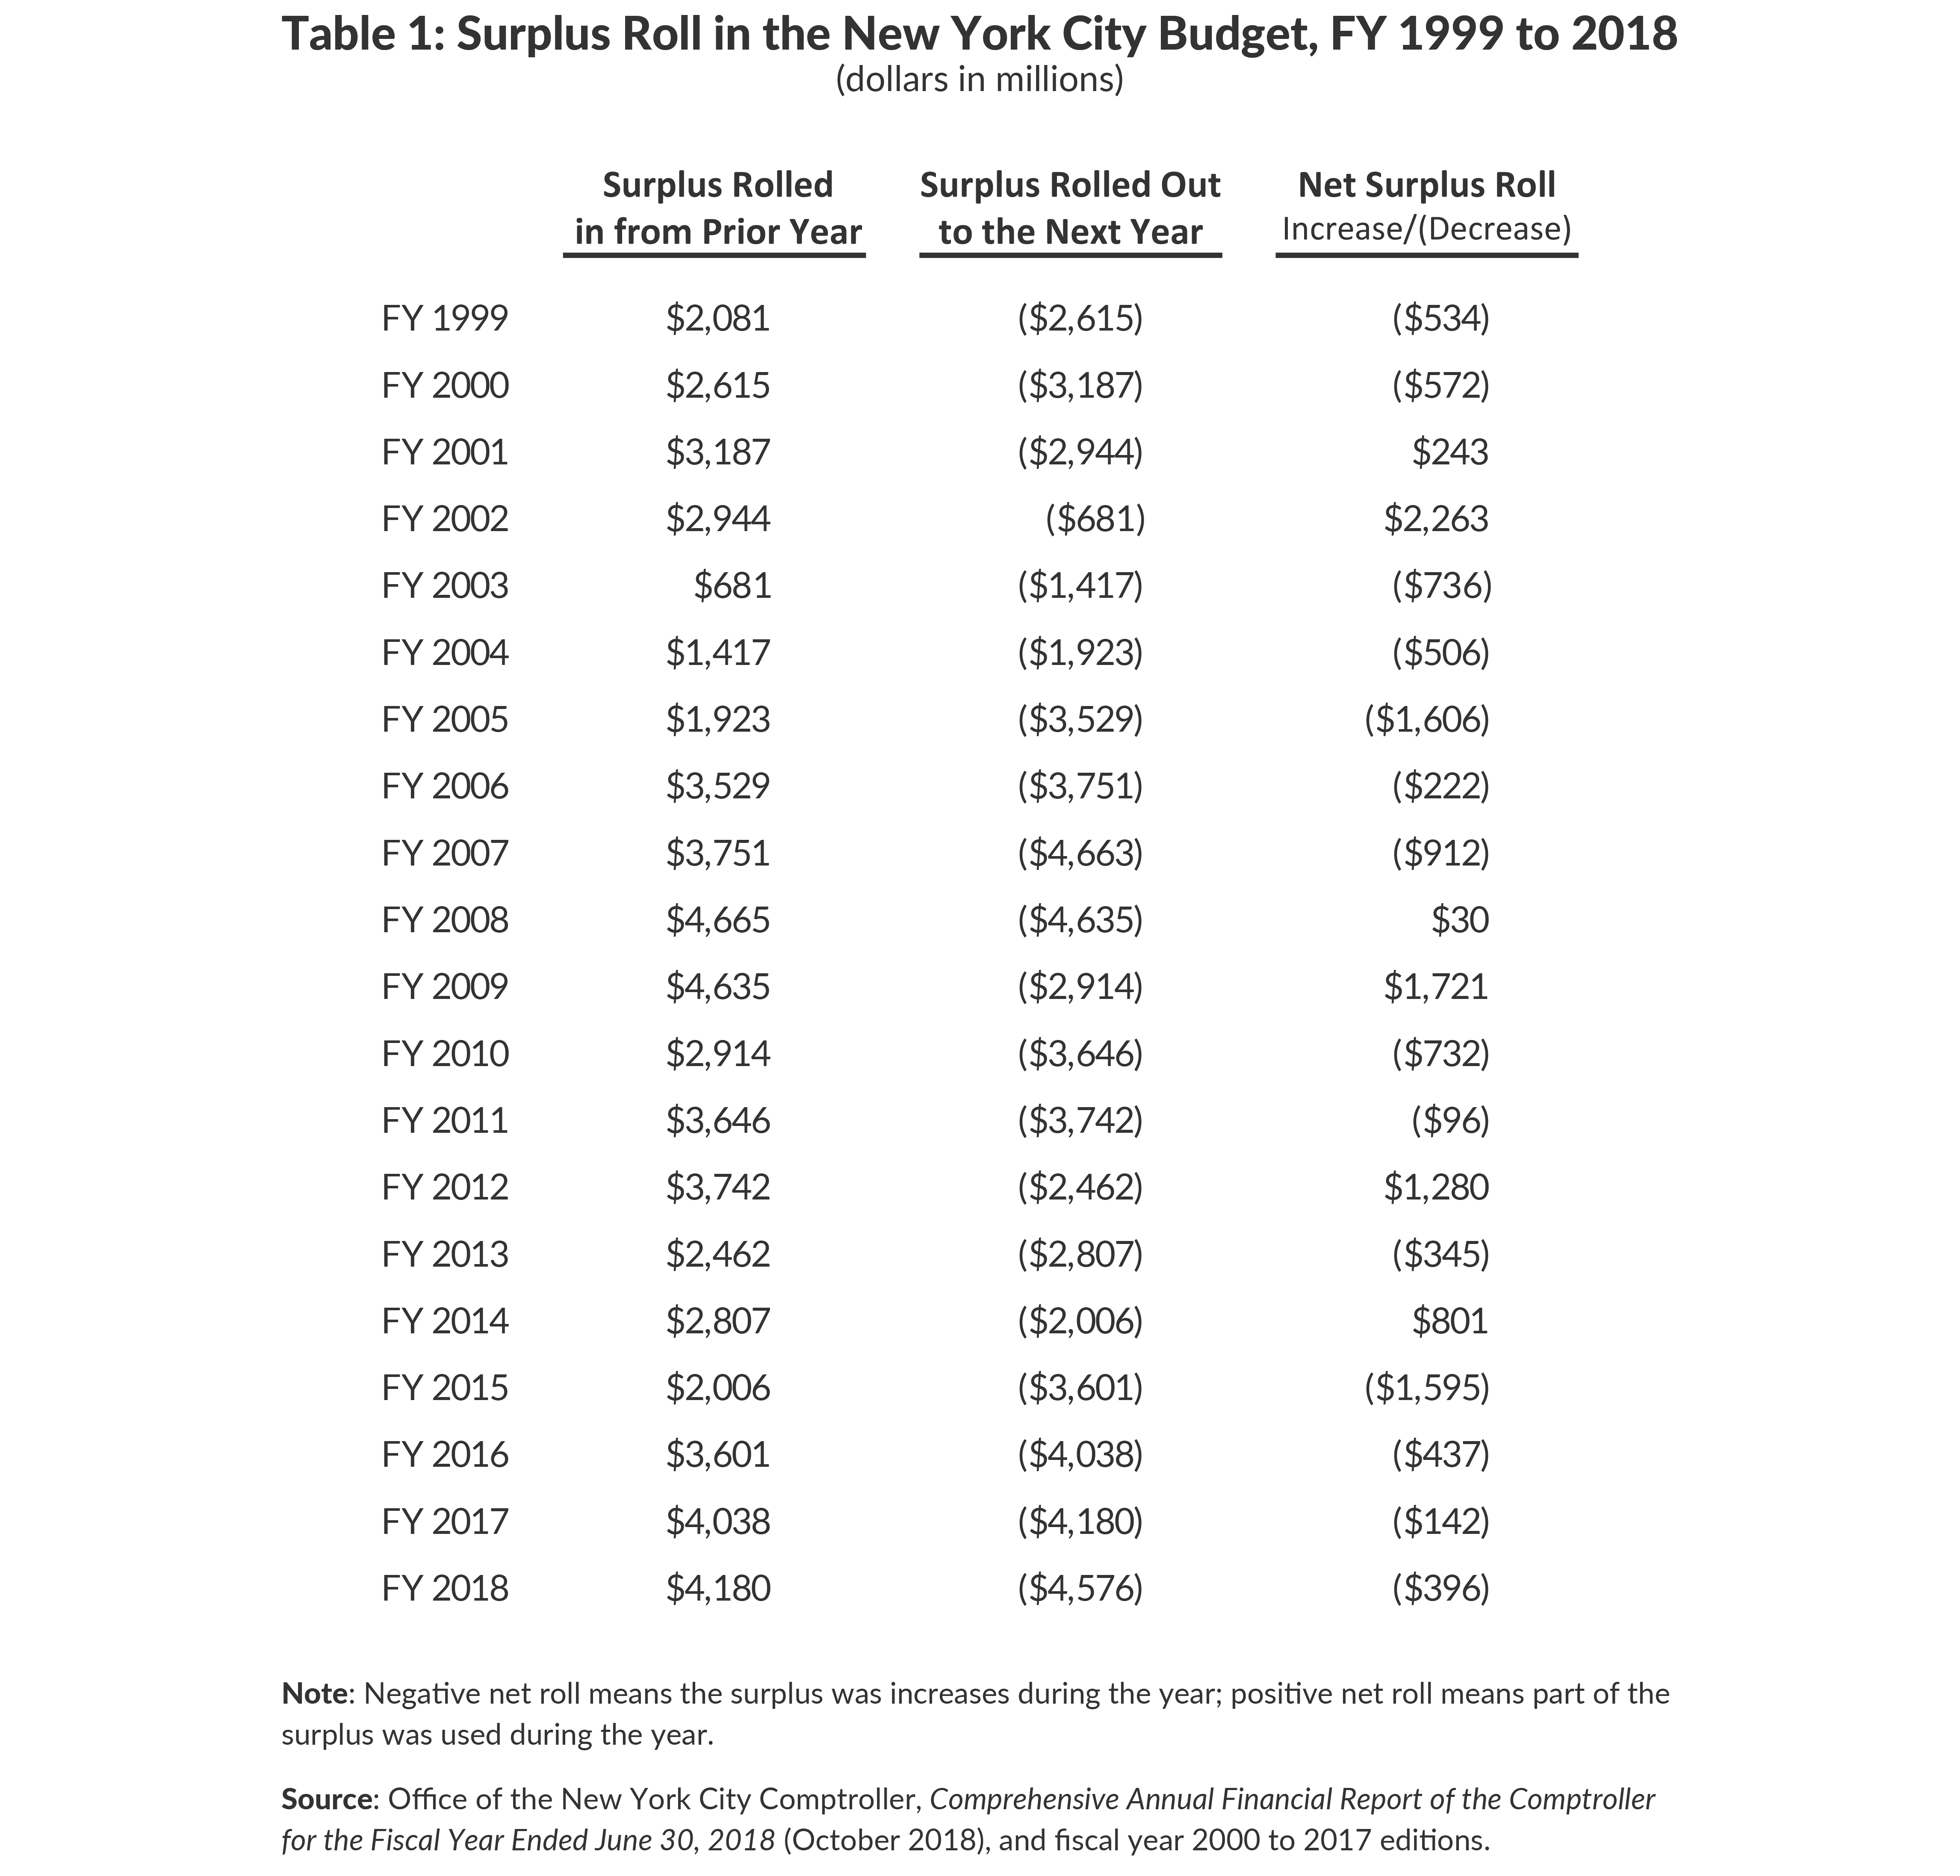 Table 1: Surplus Roll in the New York City Budget, FY 1999 to 2018